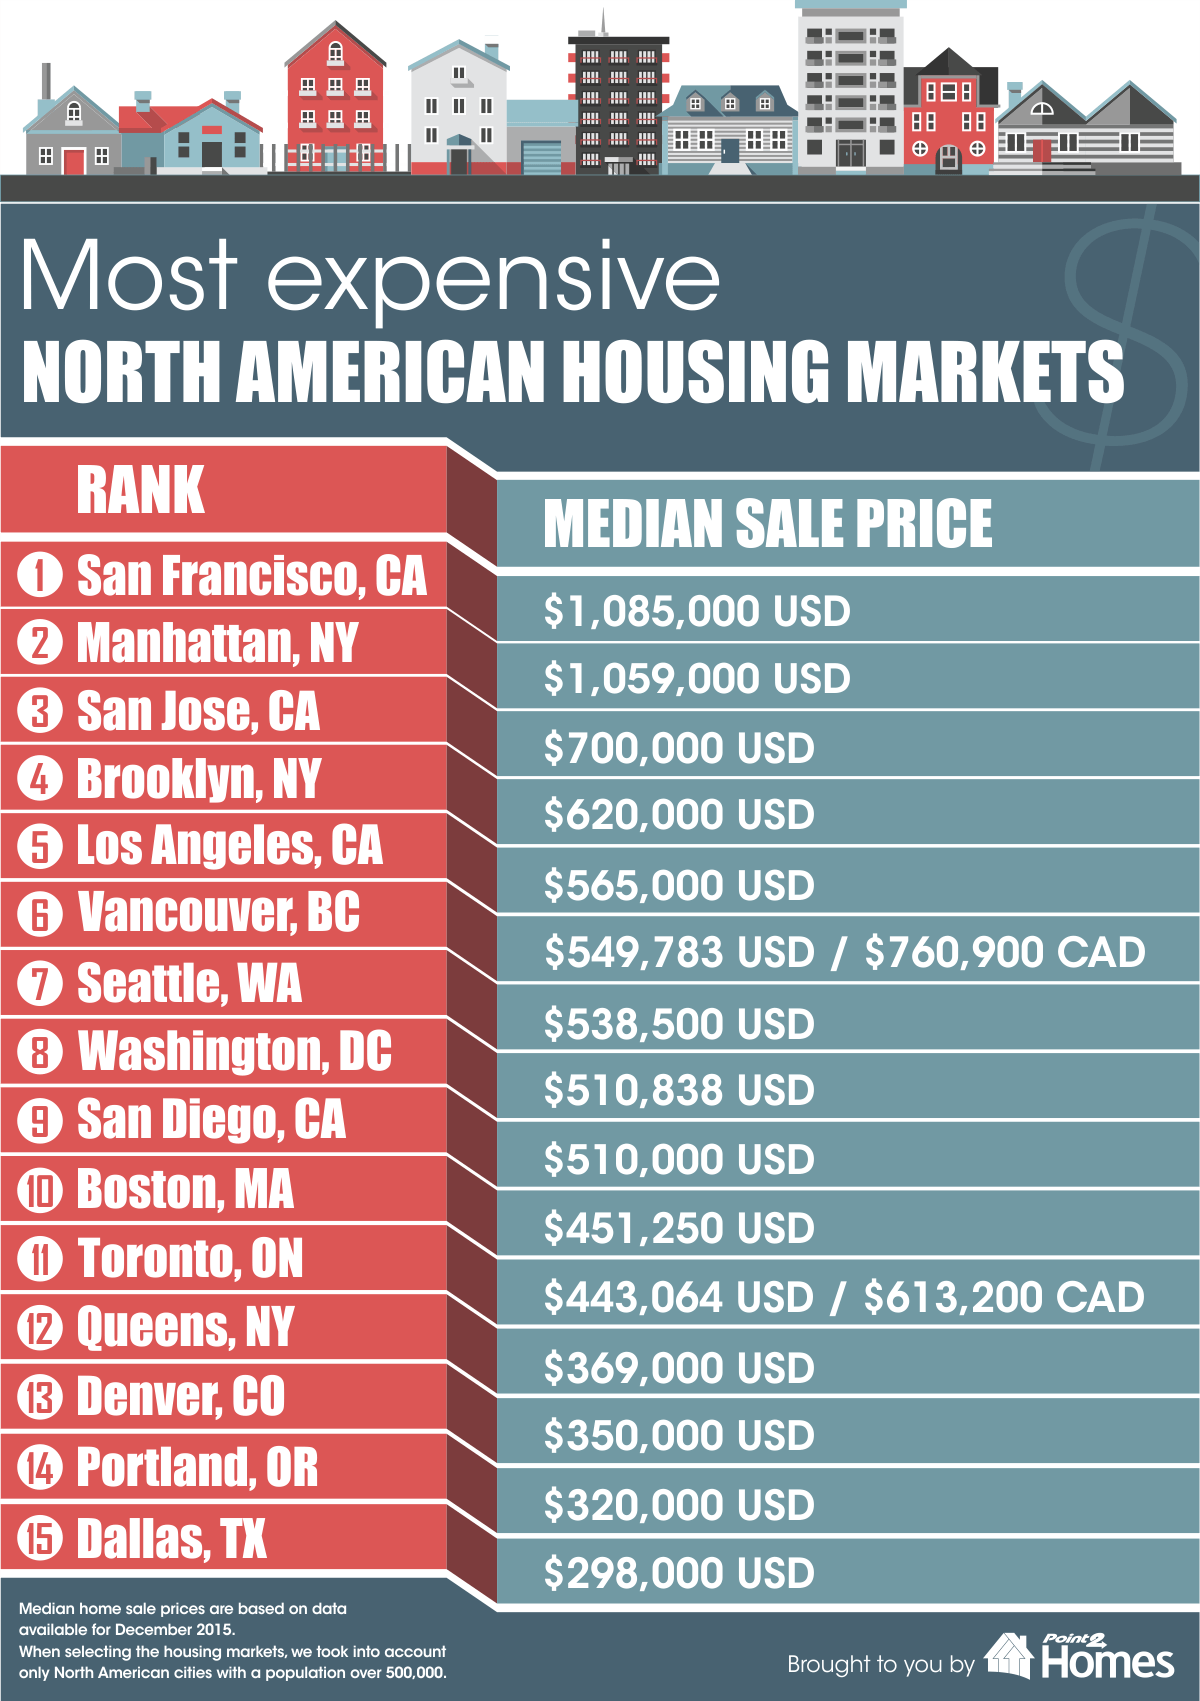 Most Expensive Housing Markets in North America